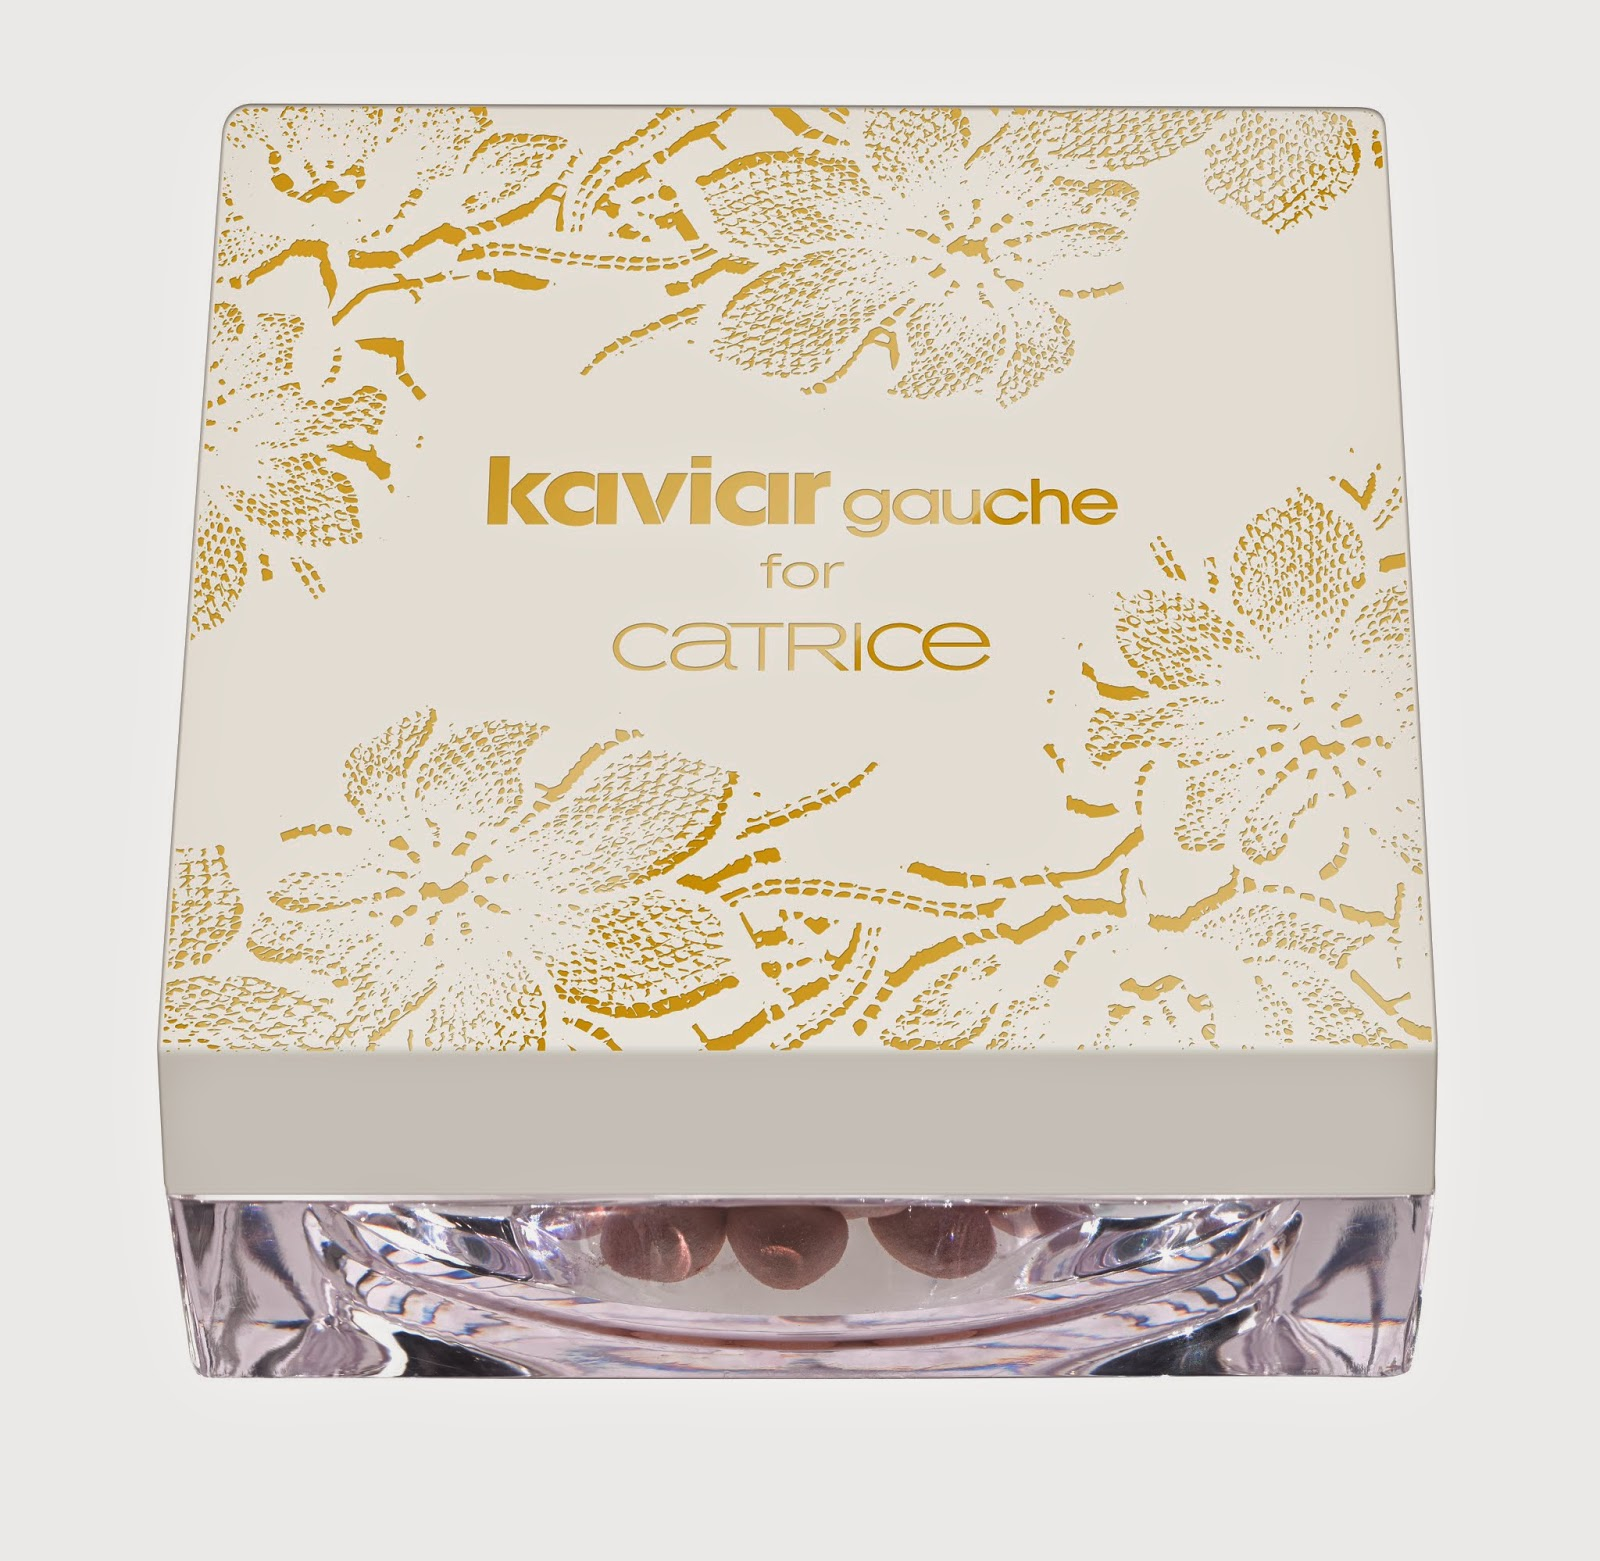 Kaviar Gauche for CATRICE – Blurring Powder Pearls - www.annitschkasblog.de